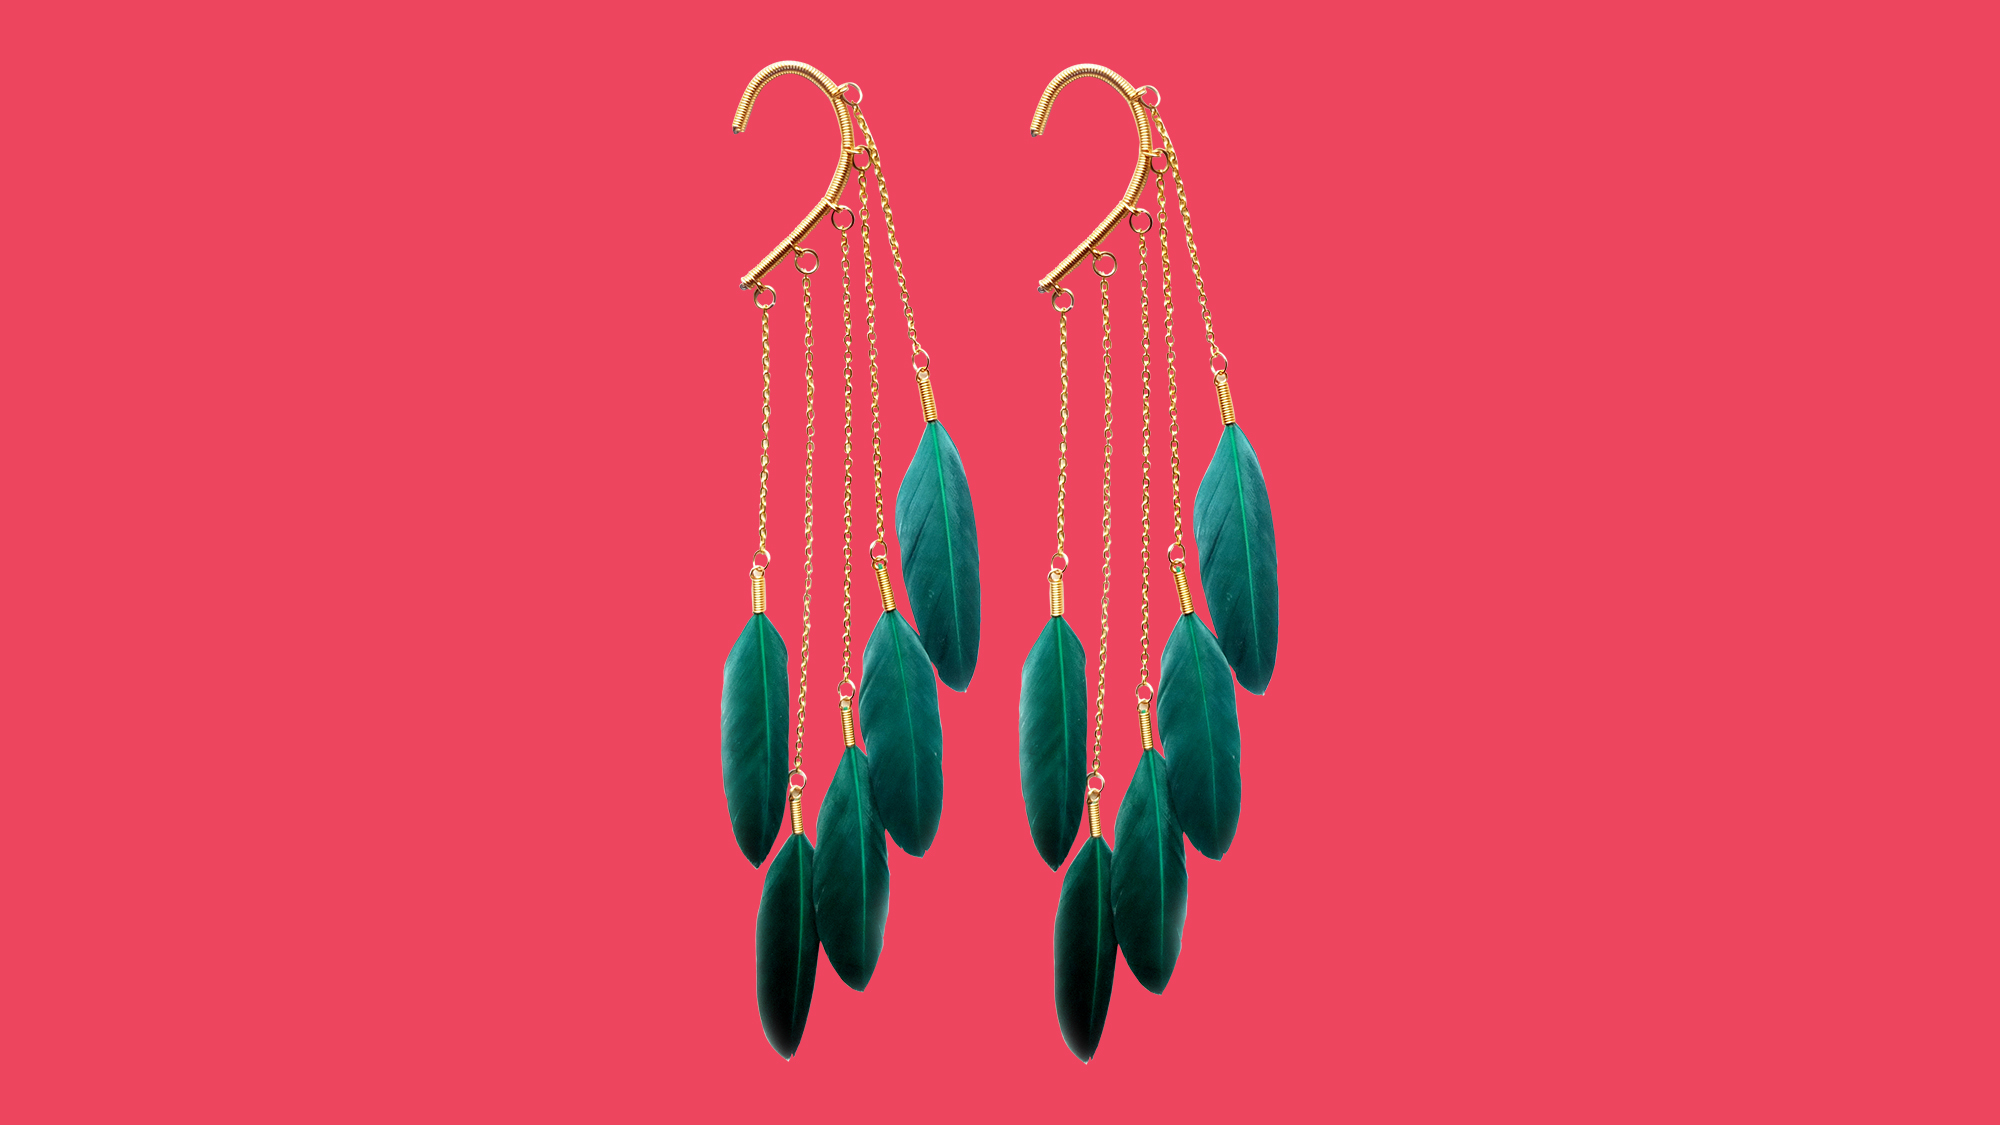 Feather earrings from Anni Jergenson